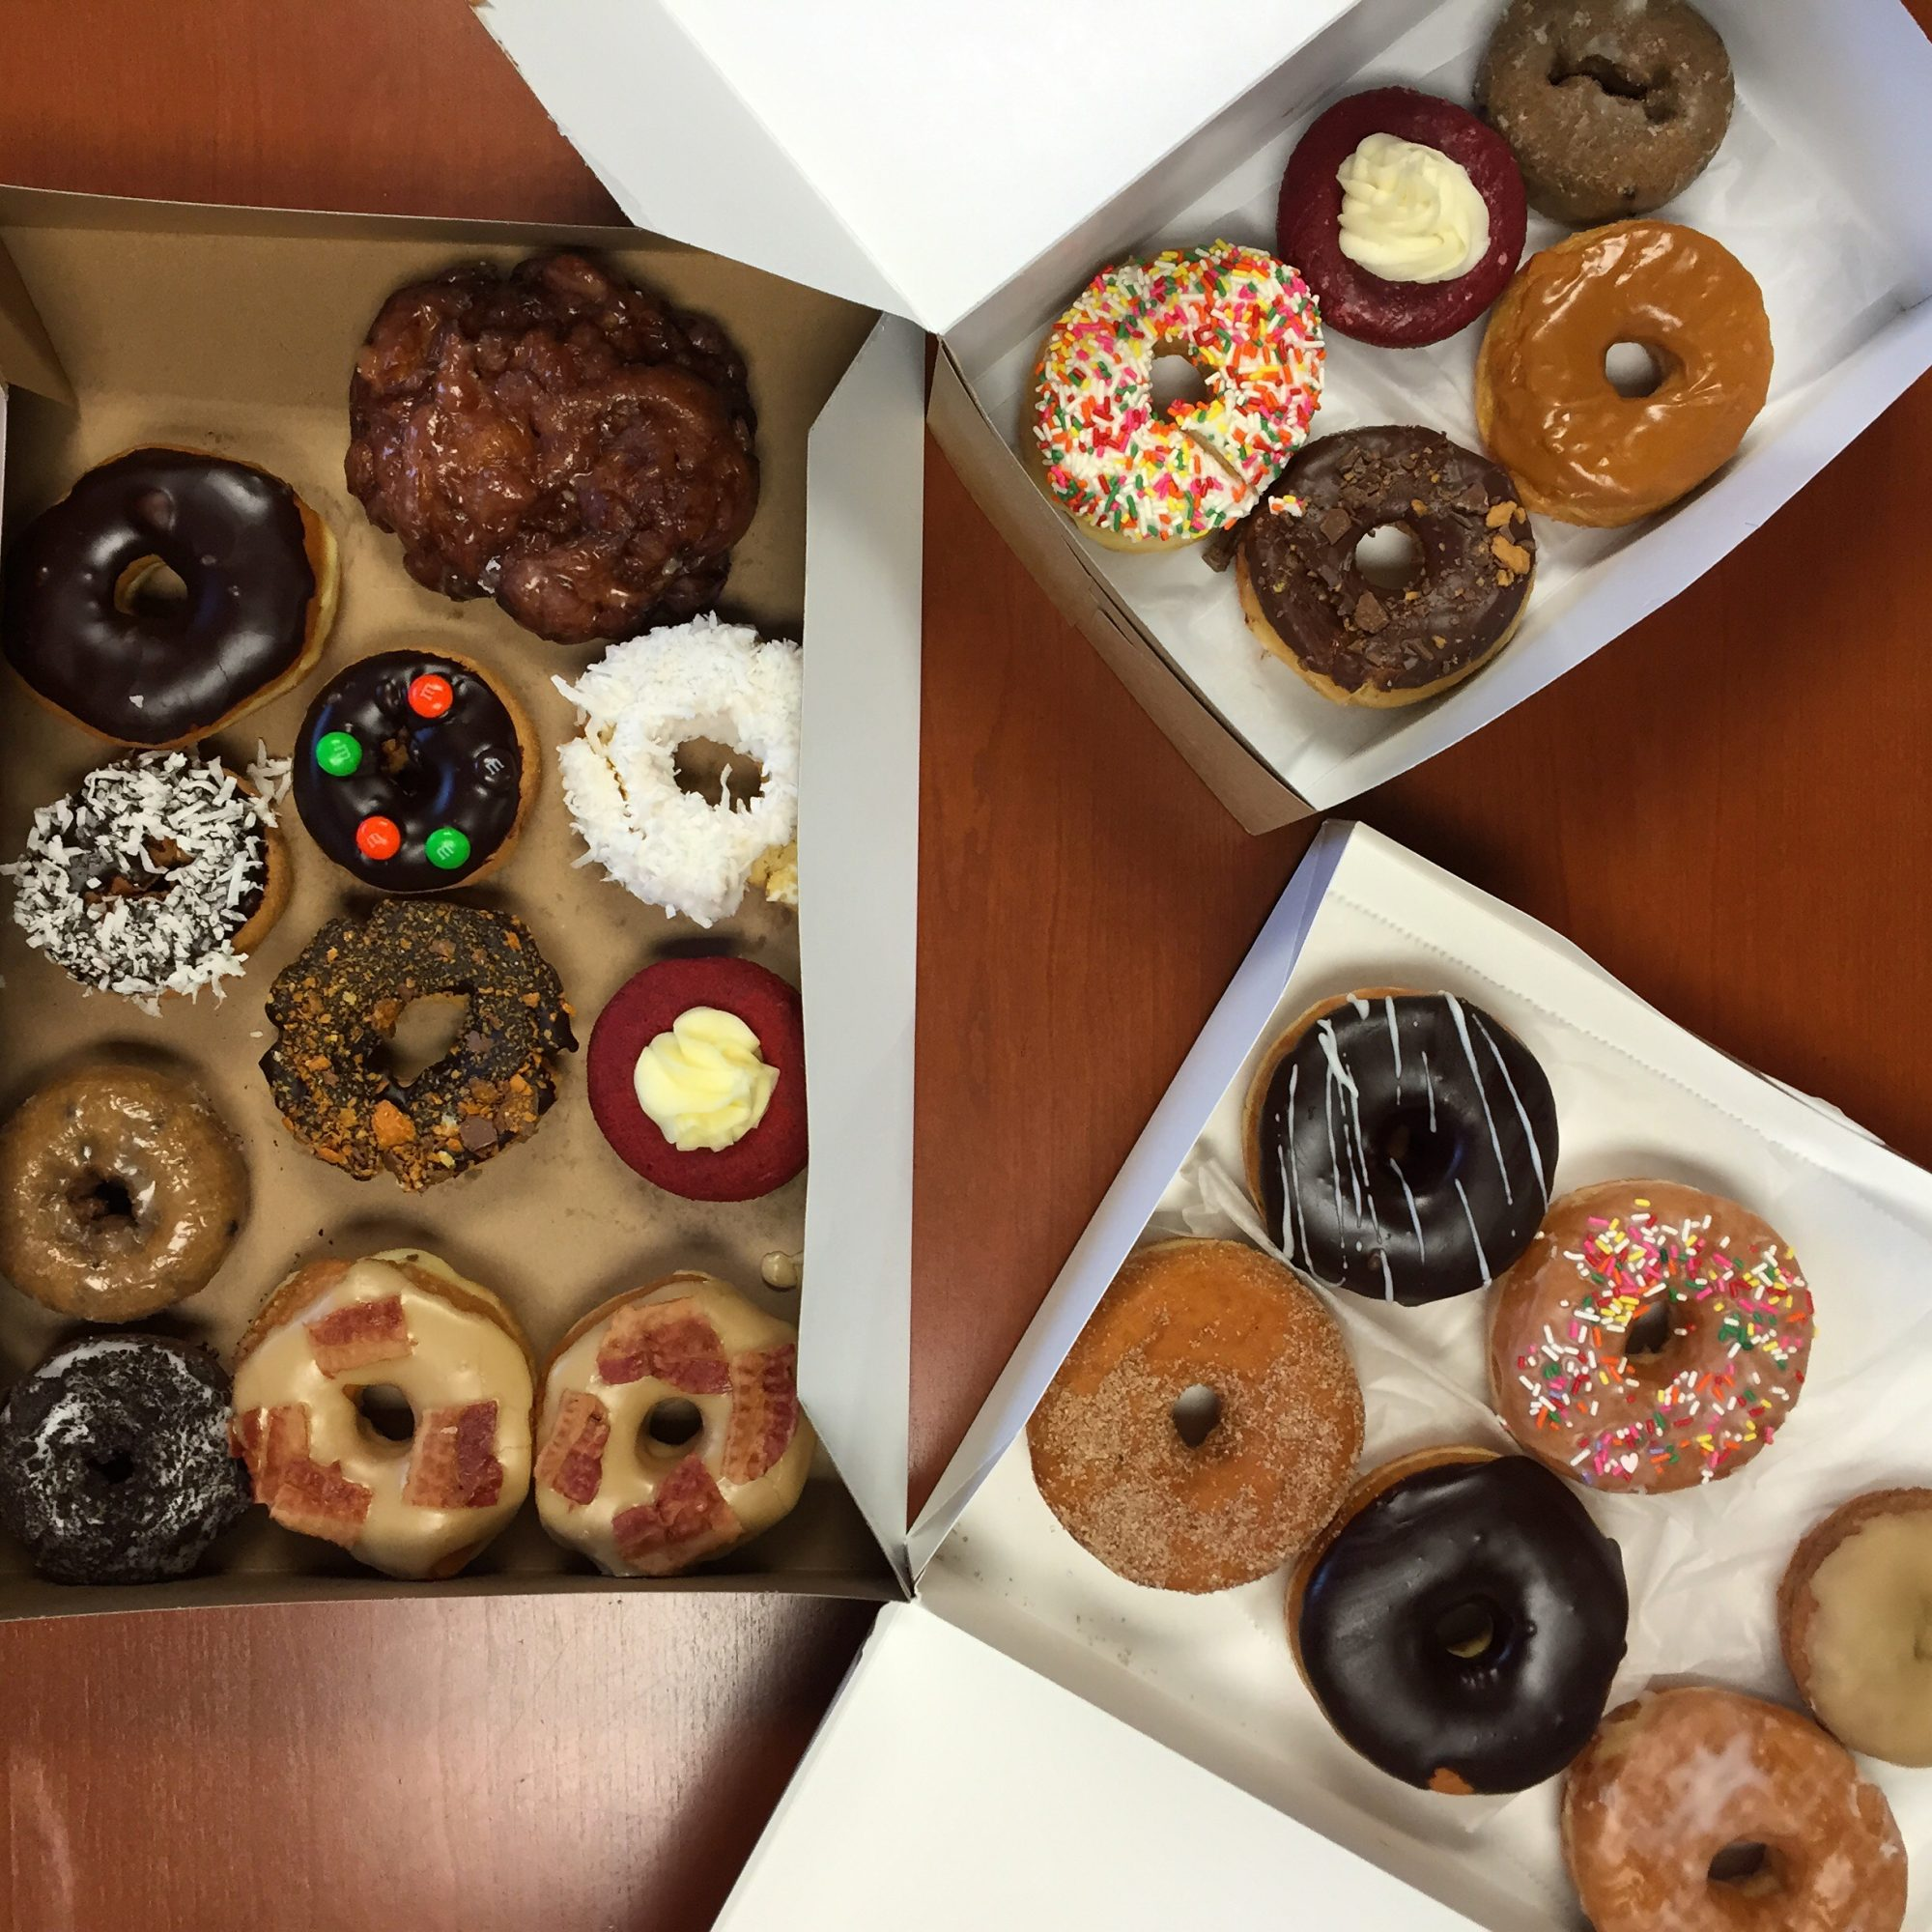 National Donut Day means donuts... Lots and LOTS of donuts.